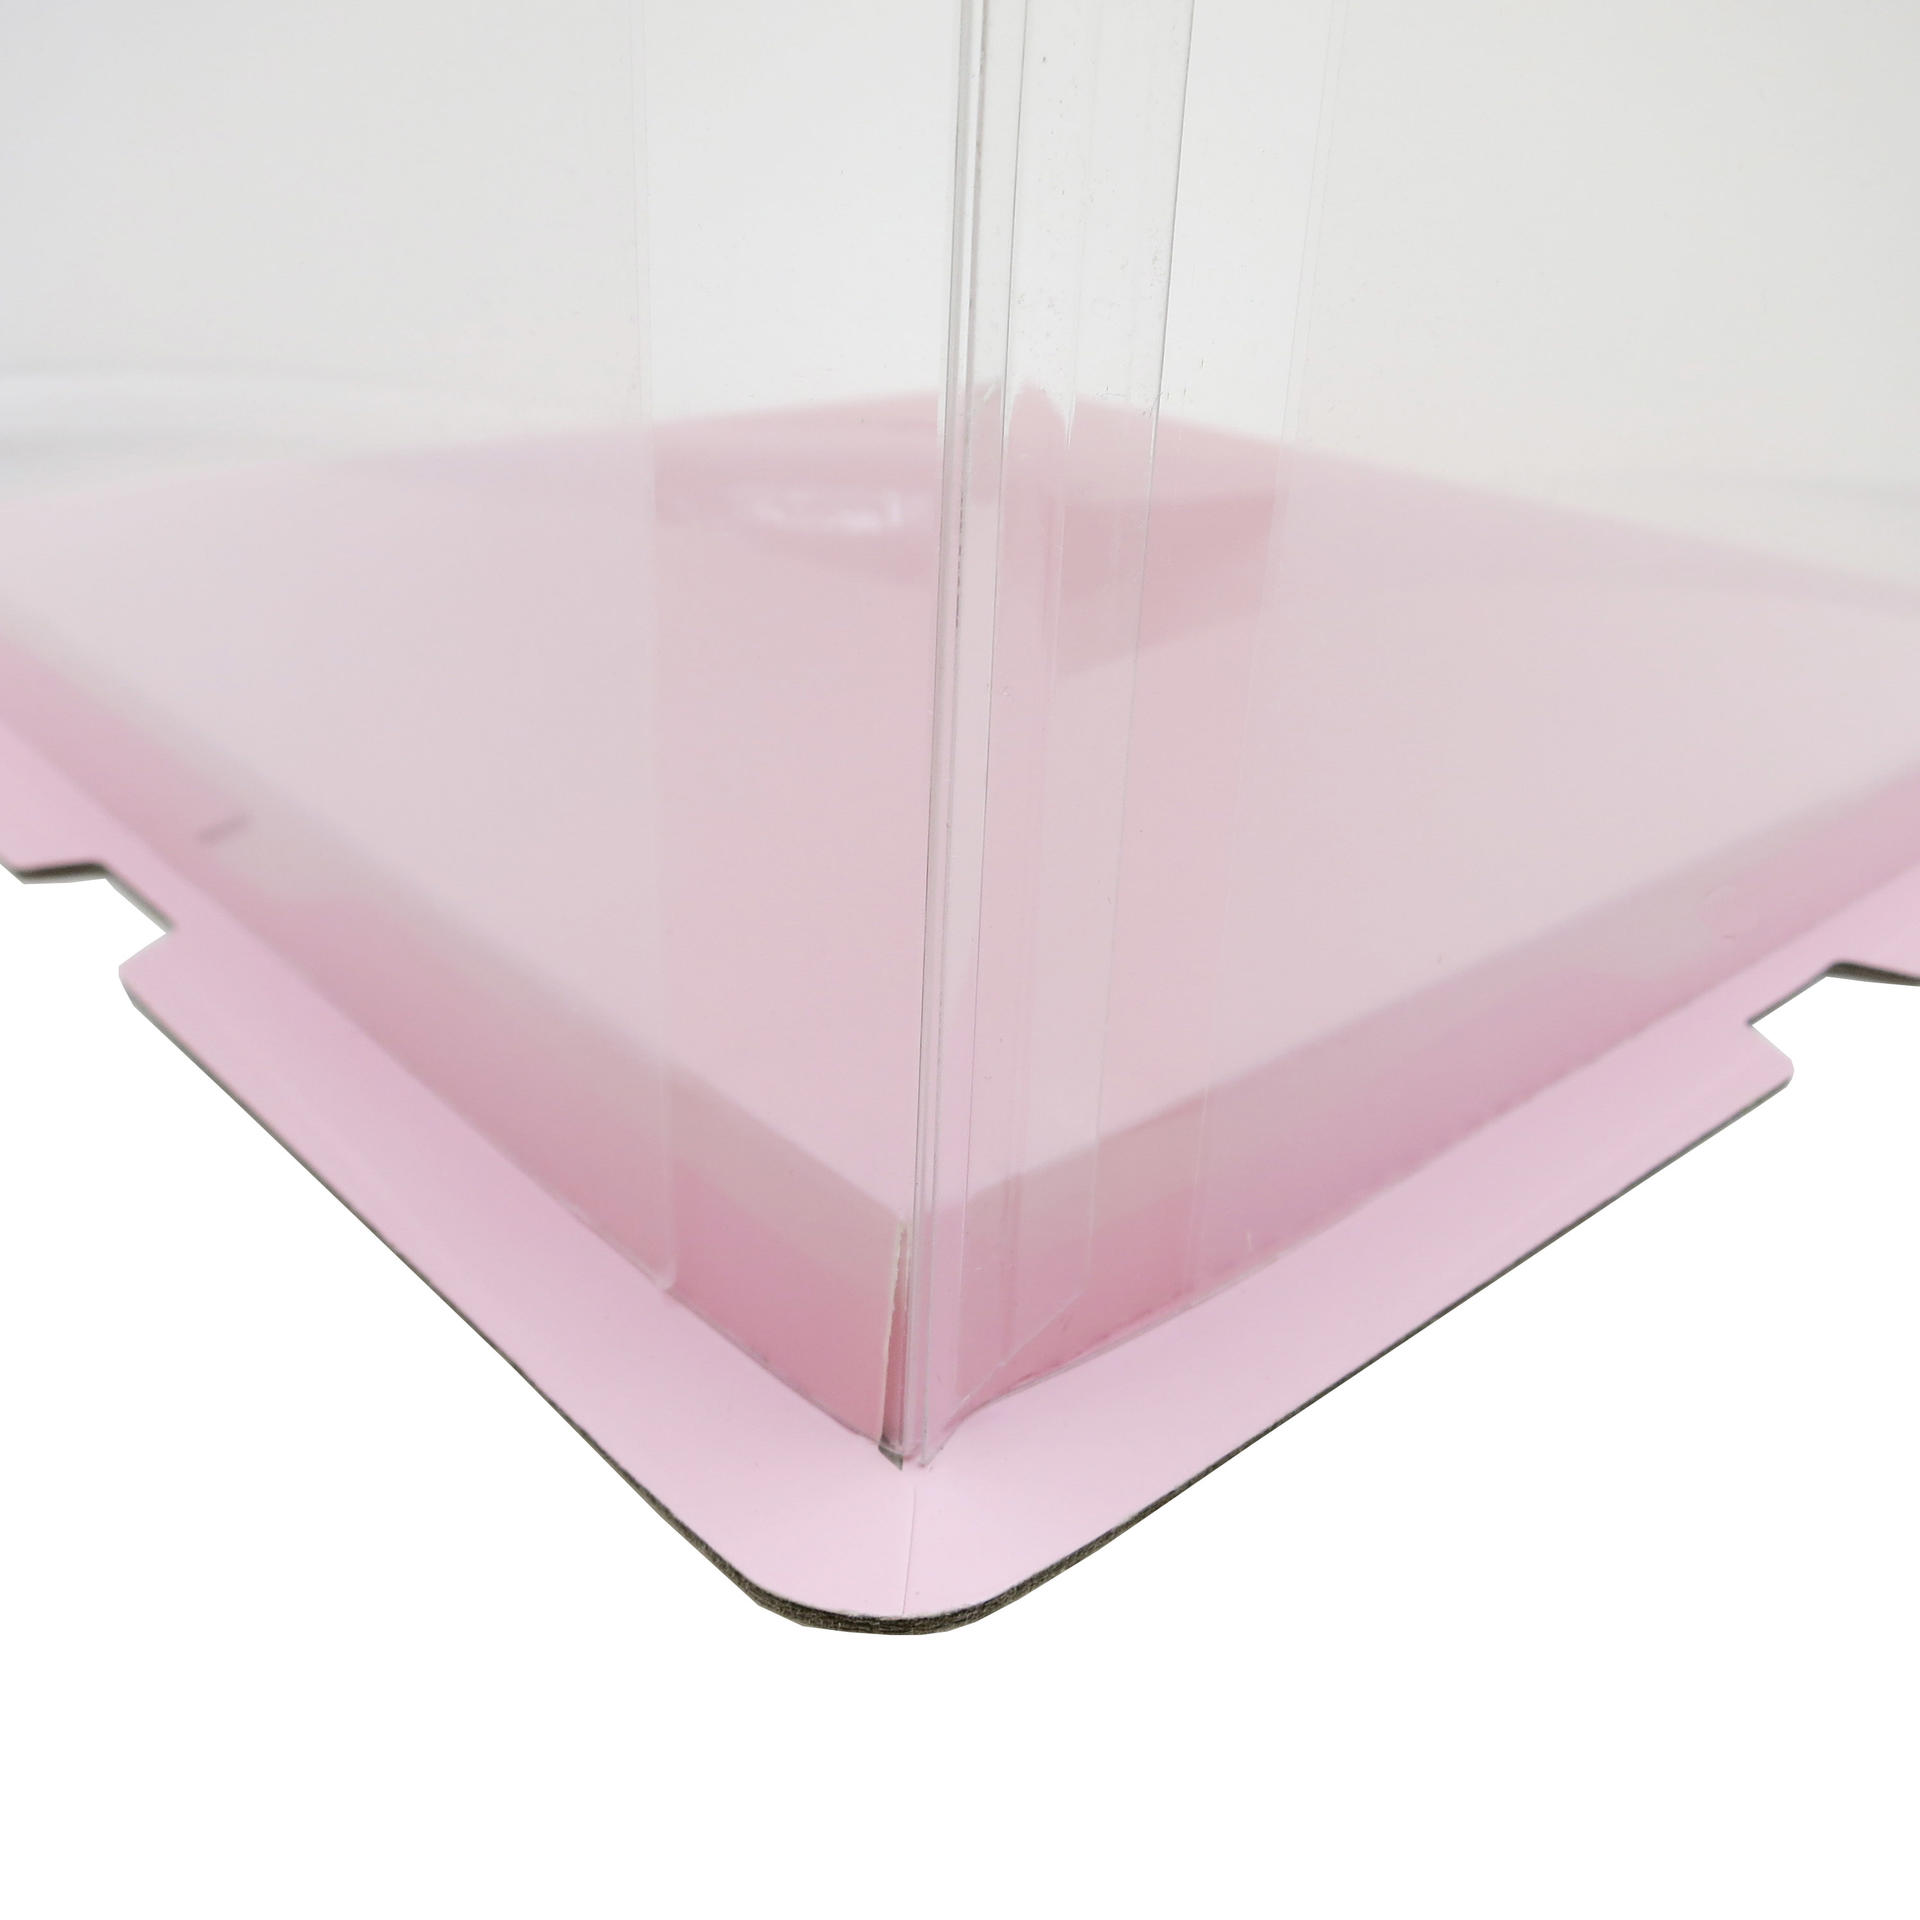 6 Inches Cake PET Food Grade Plastic Clear Cake Box